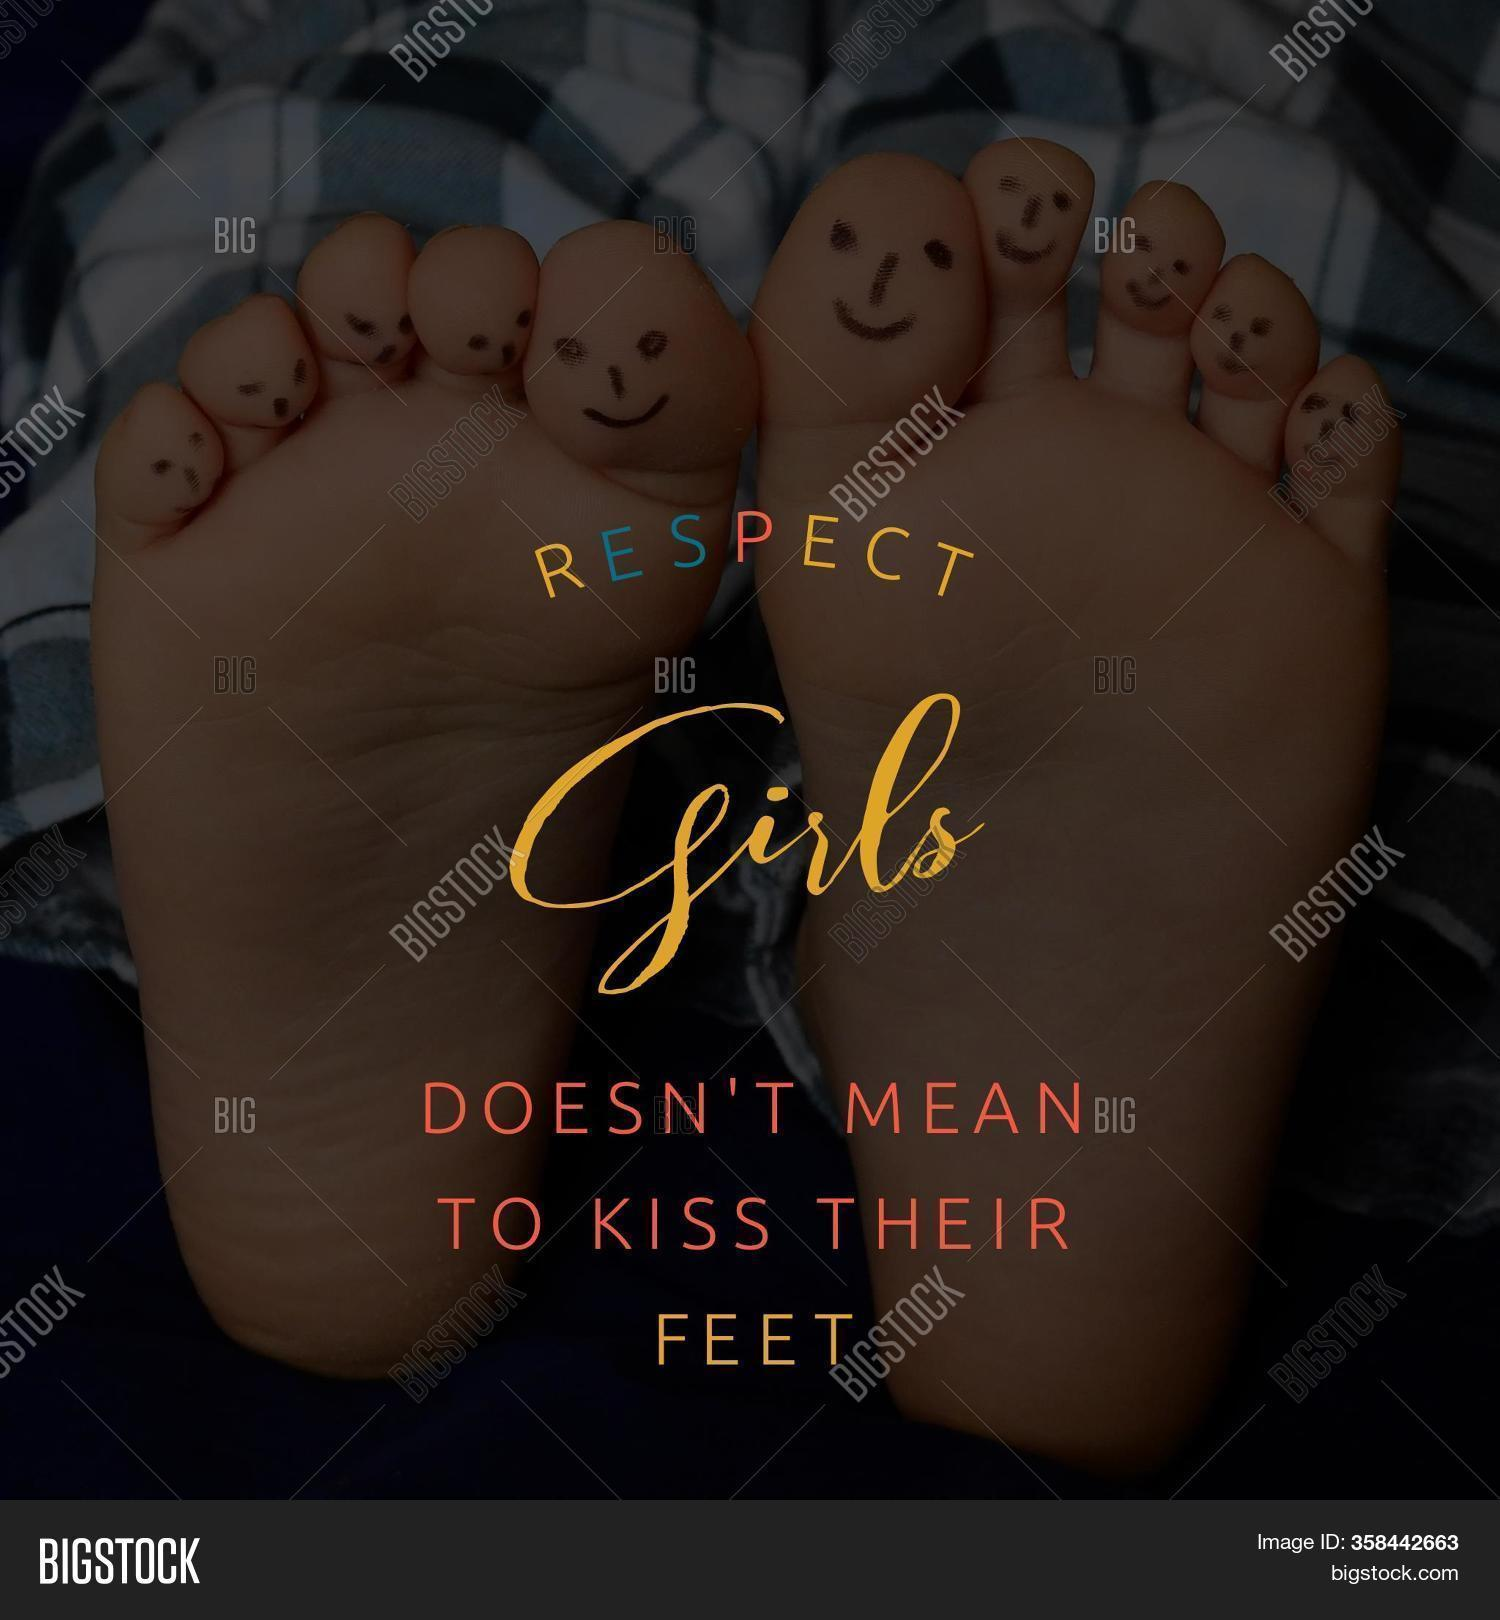 Respect Girls Does Not Image Photo Free Trial Bigstock